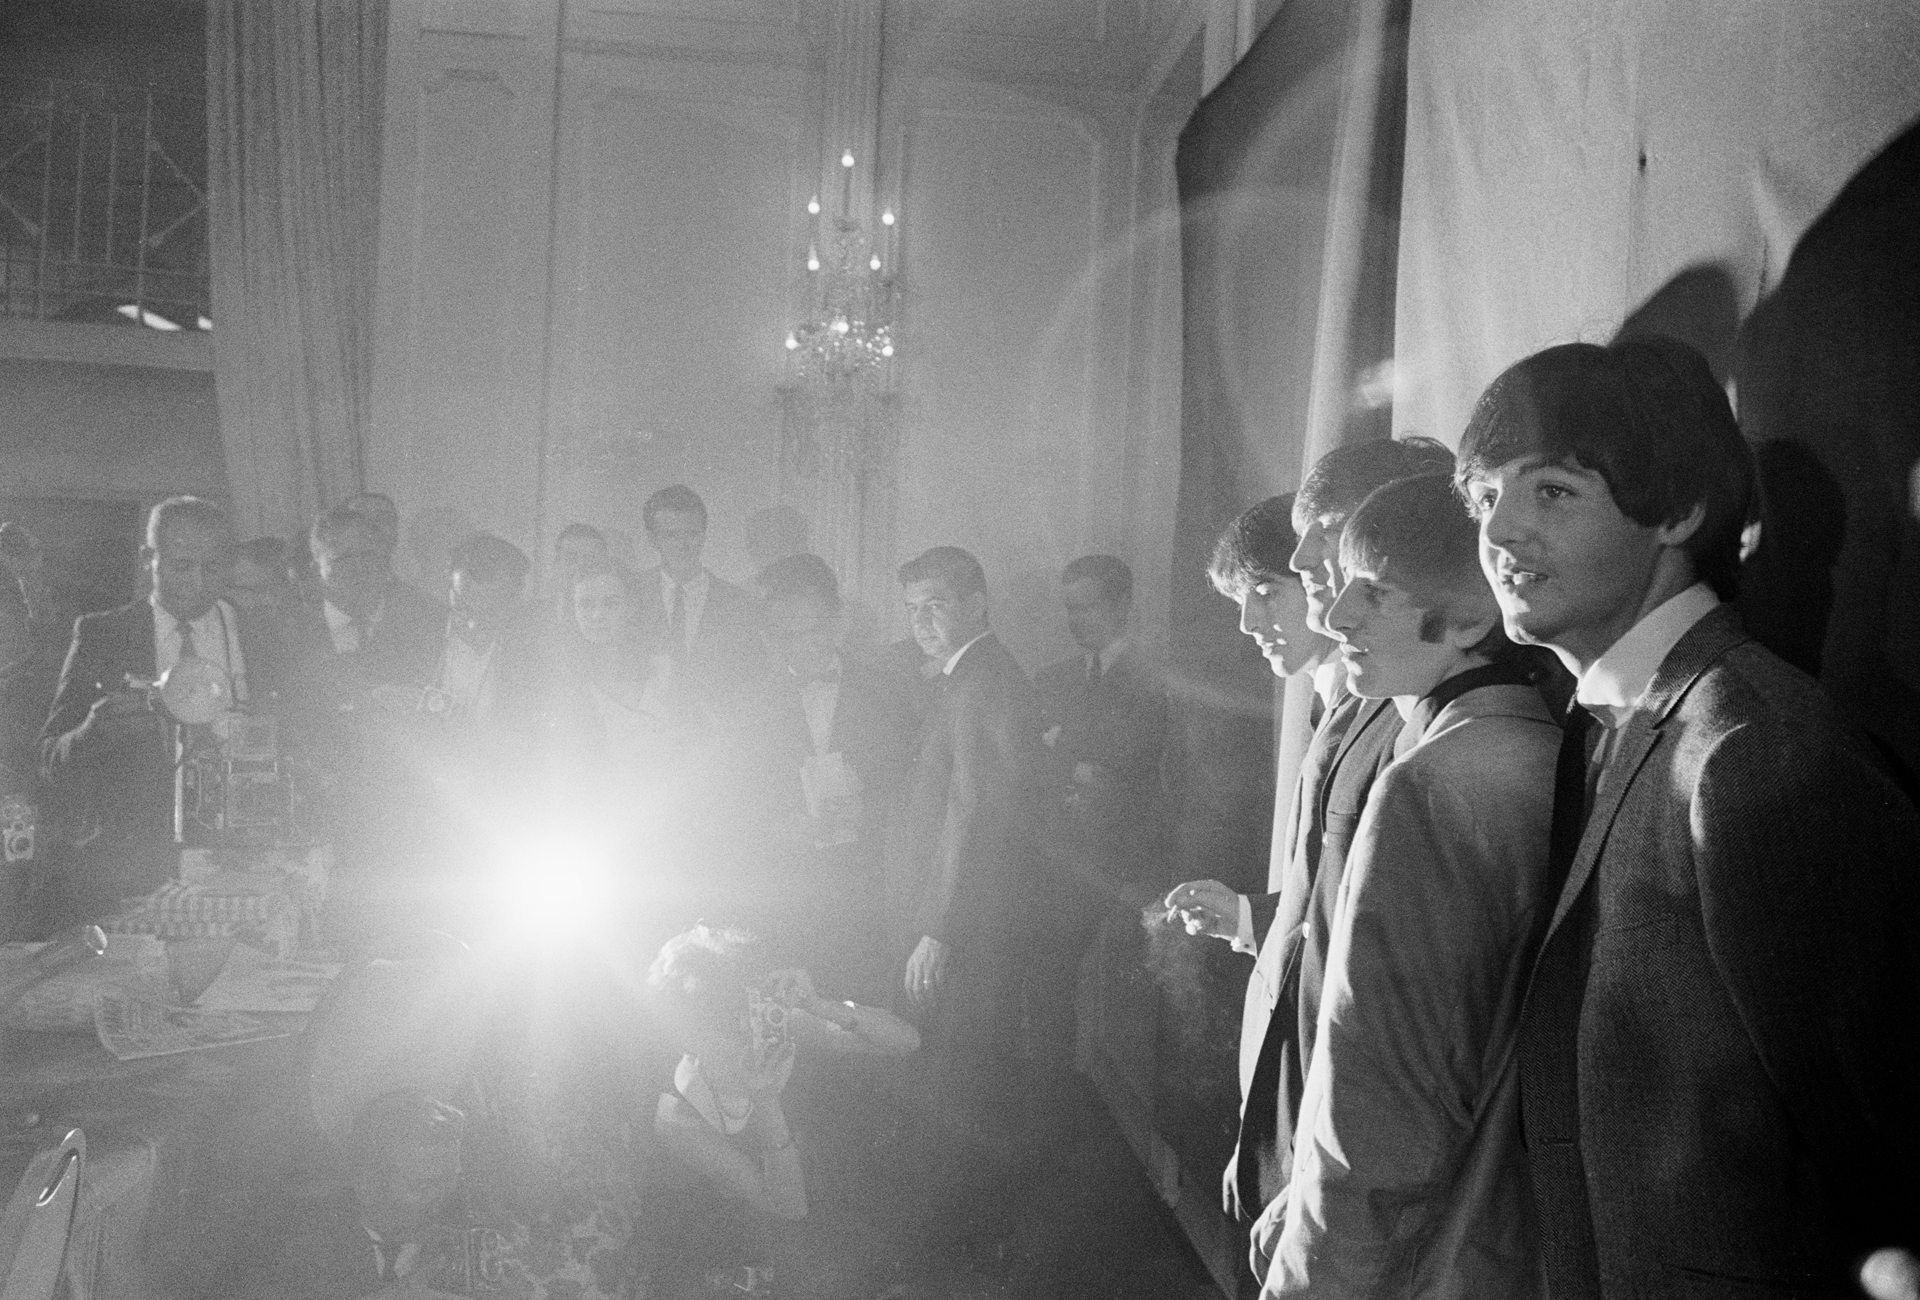 Black and white photograph of The Beatles standing against a white backdrop as a crowd looks on.